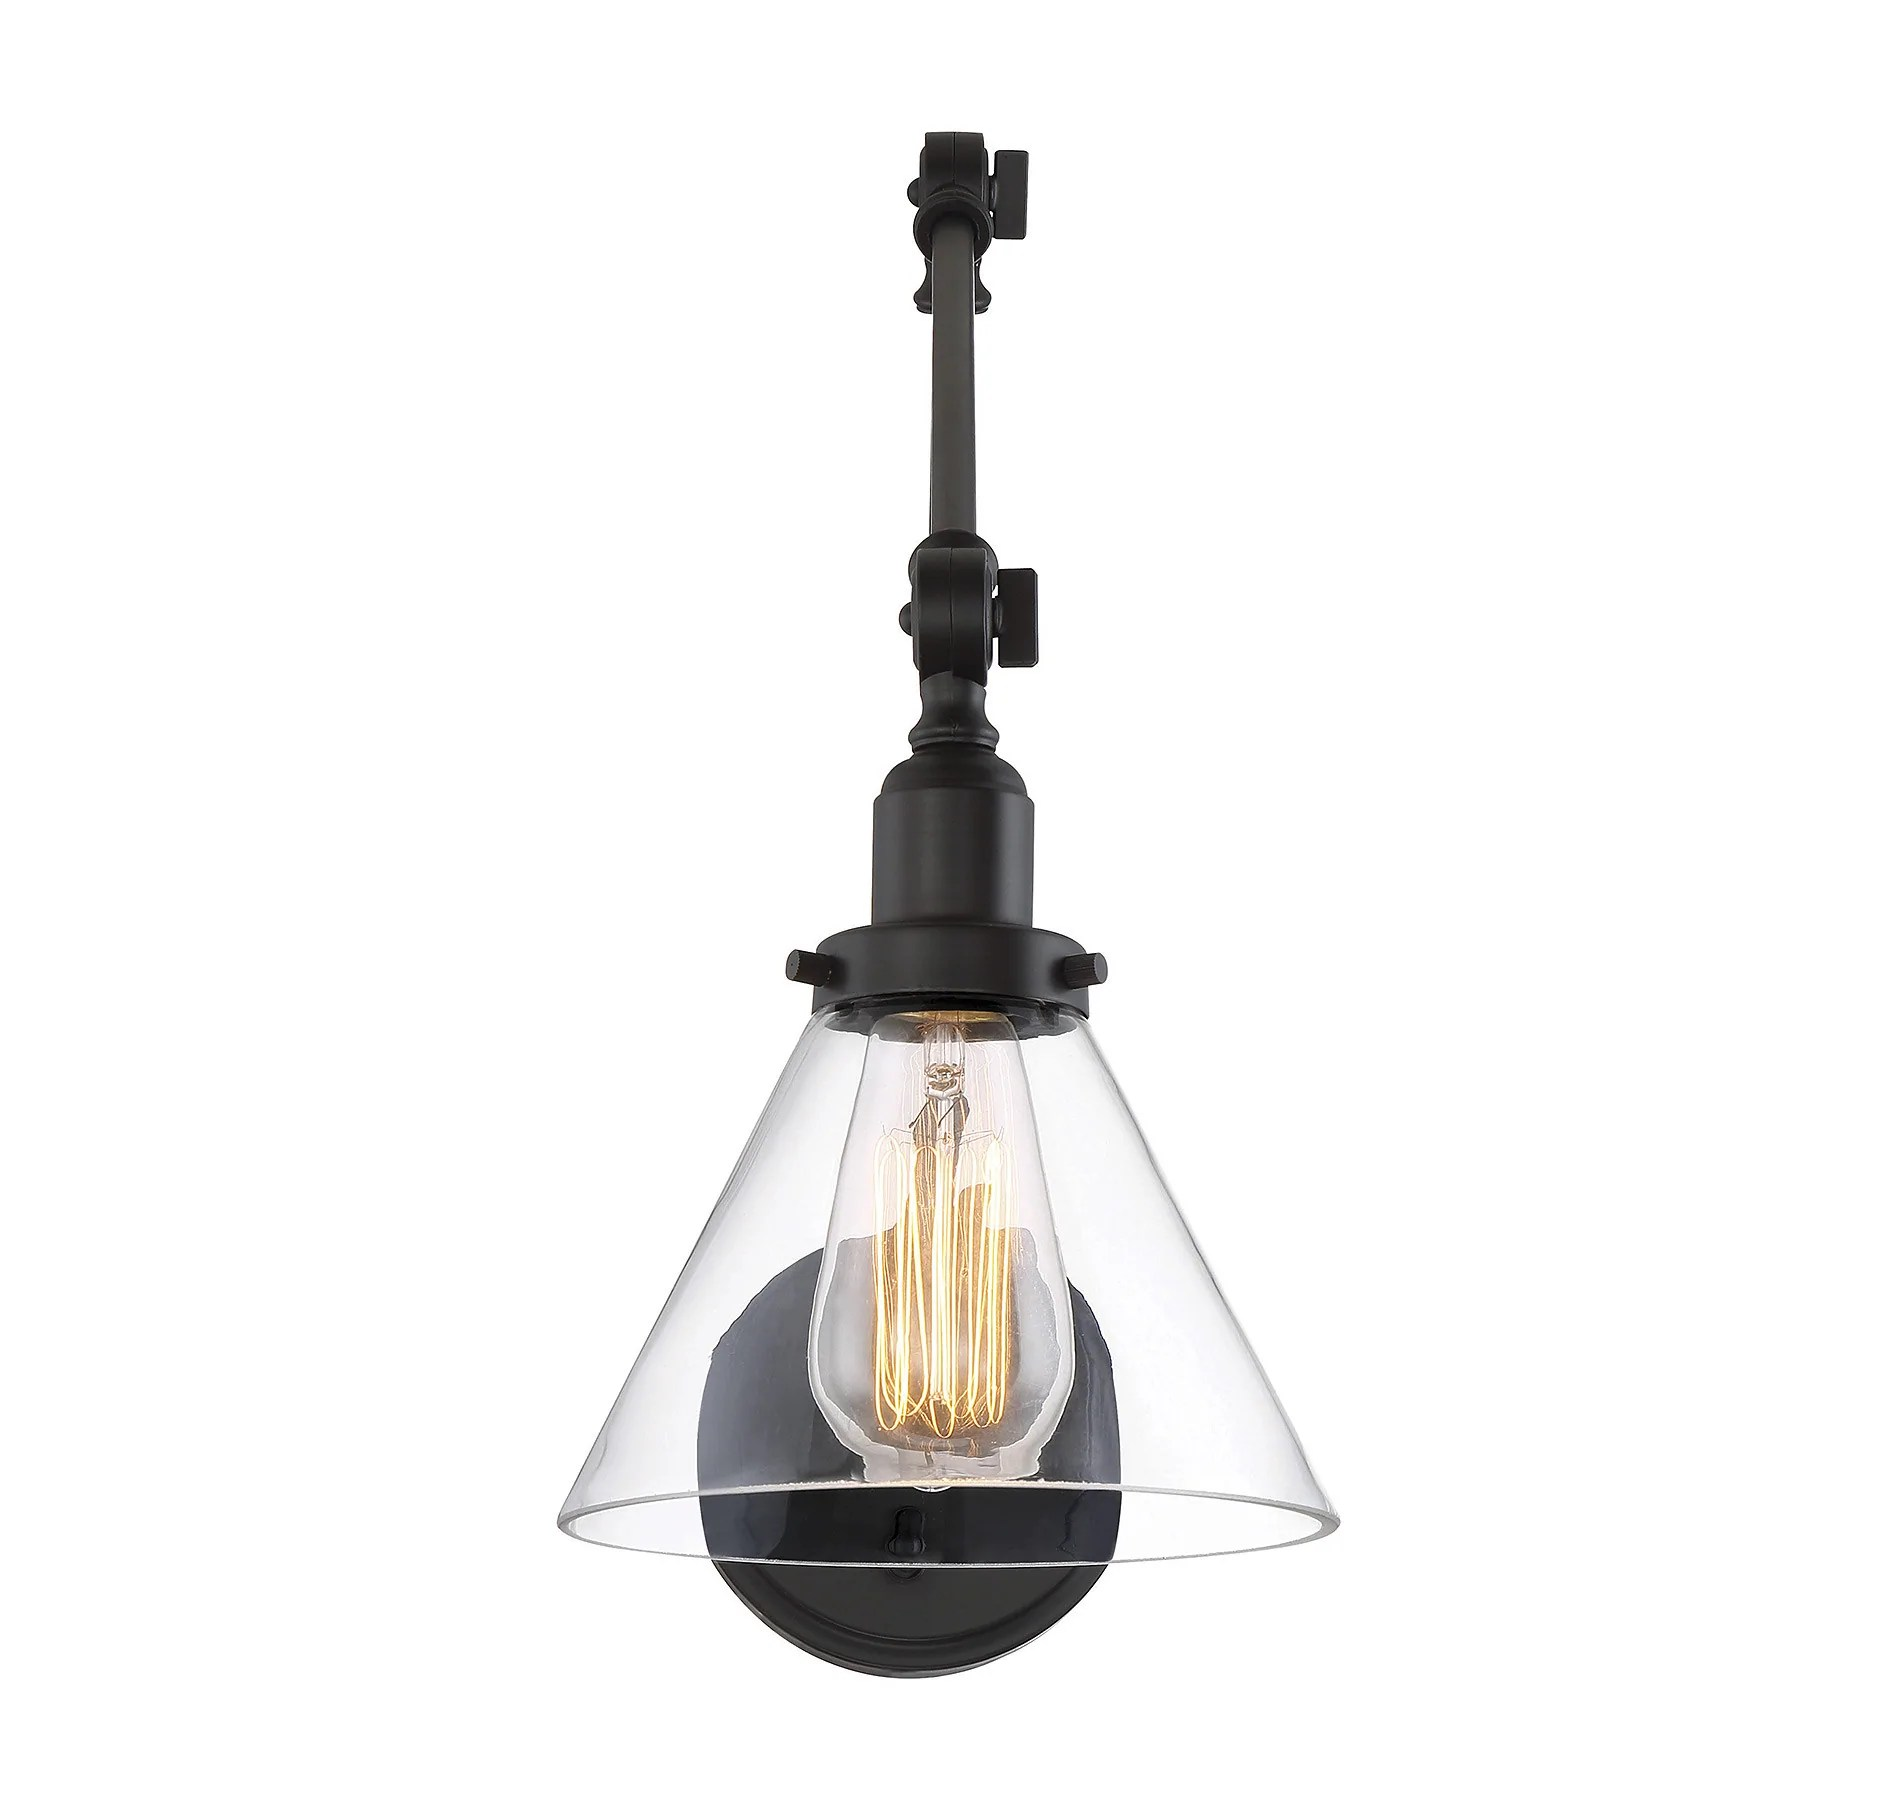 Industrial Swing Arm Lighting Drake Swing Arm Sconce By Savoy House Lighting Connection